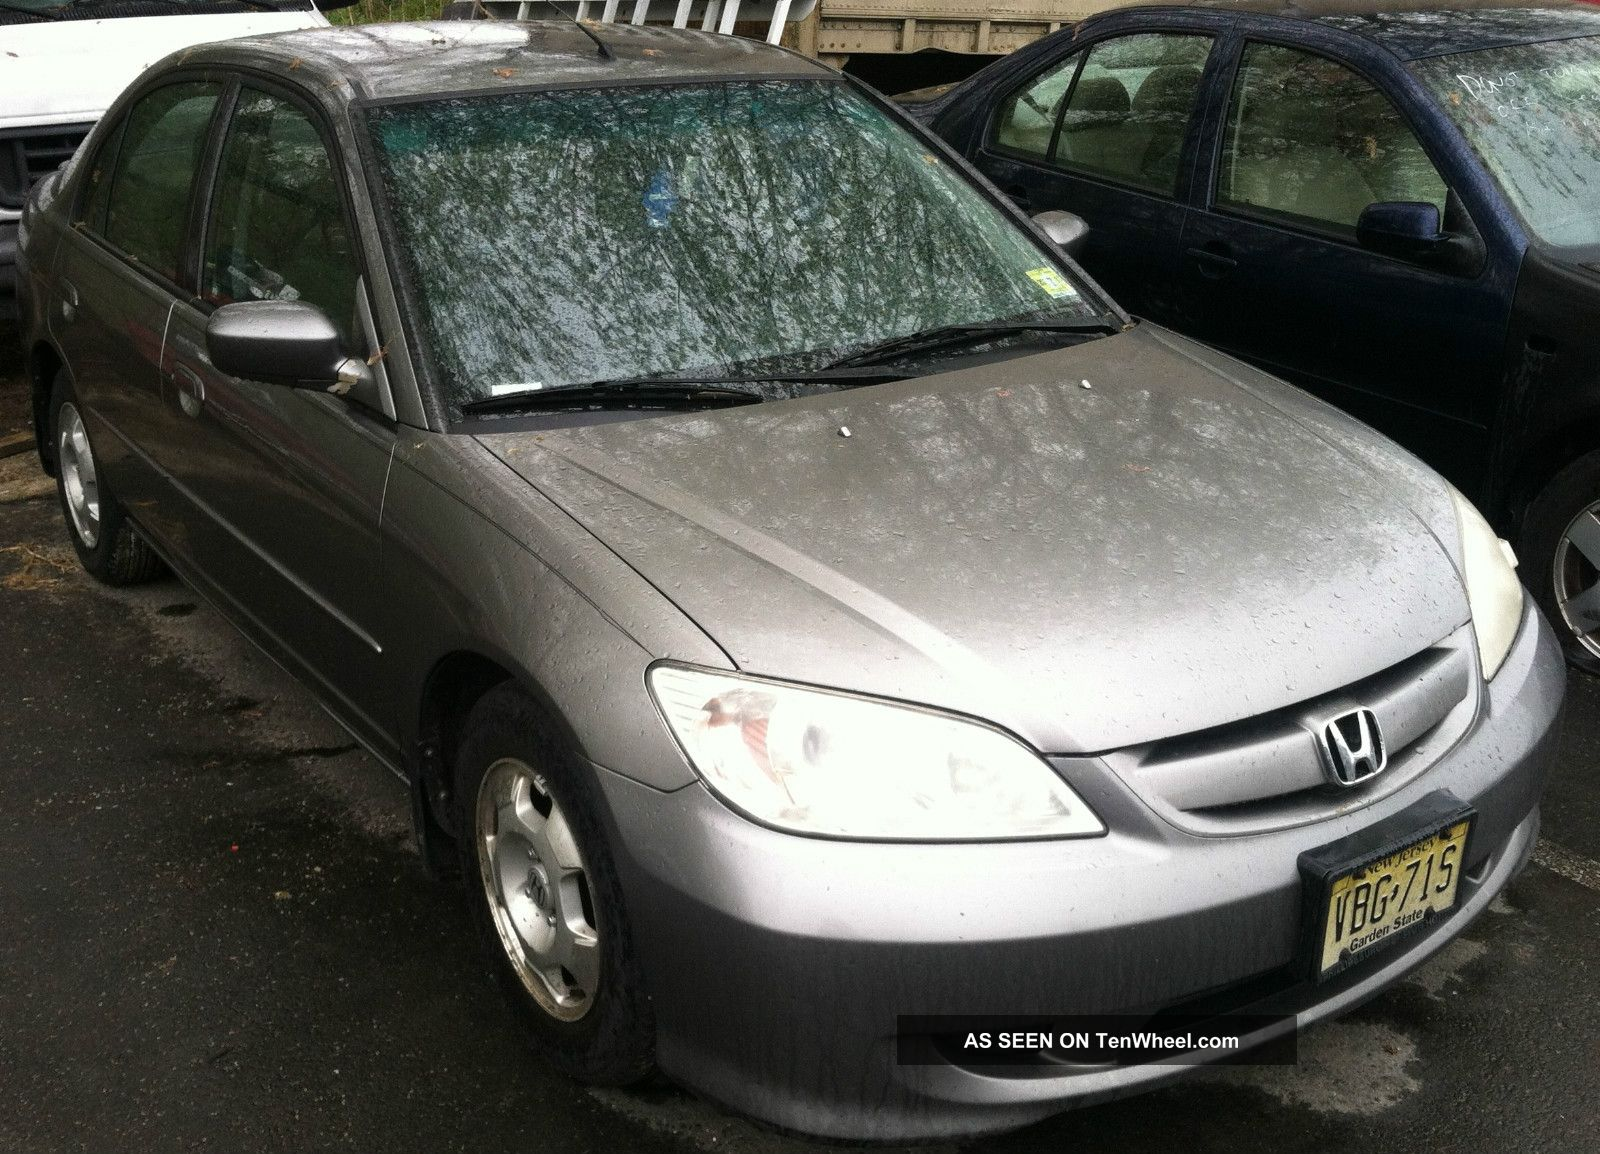 2005 Honda Civic Hybrid Mechanic Special Civic photo